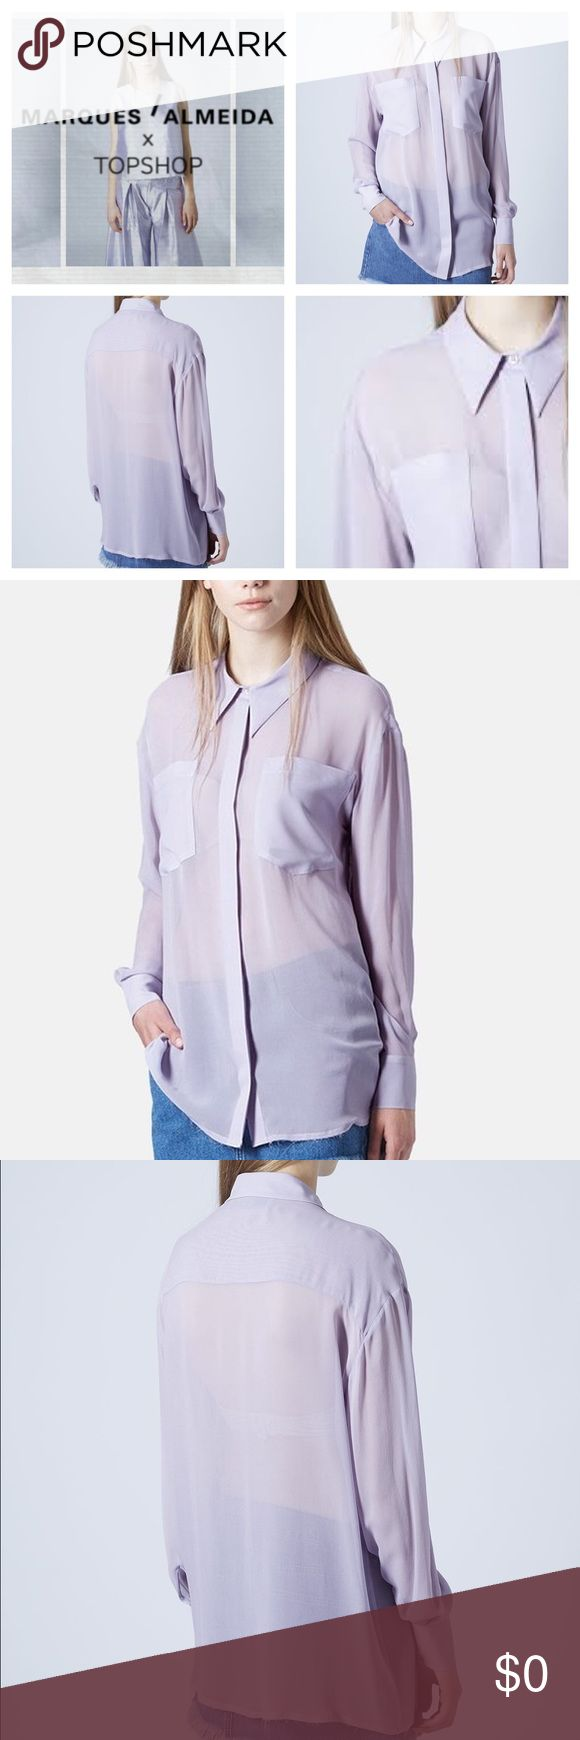 "MARQUES' ALMEIDA for Topshop Lilac Silk Blouse Marques' Almeida for Topshop - Lilac Oversized Silk Shirt Blouse. A hidden front button placket & a pair of roomy chest patch pockets define this semi-sheer, stylishly oversized shirt crafted from smooth silk. 30"" length (size 8). 100% silk. / Dry clean. Only flaw: teeny tiny hold on back seam. See photos.   SIZE : EUR 40, US 8, UK 12. Fits like a US 6-8. Topshop Tops Blouses"